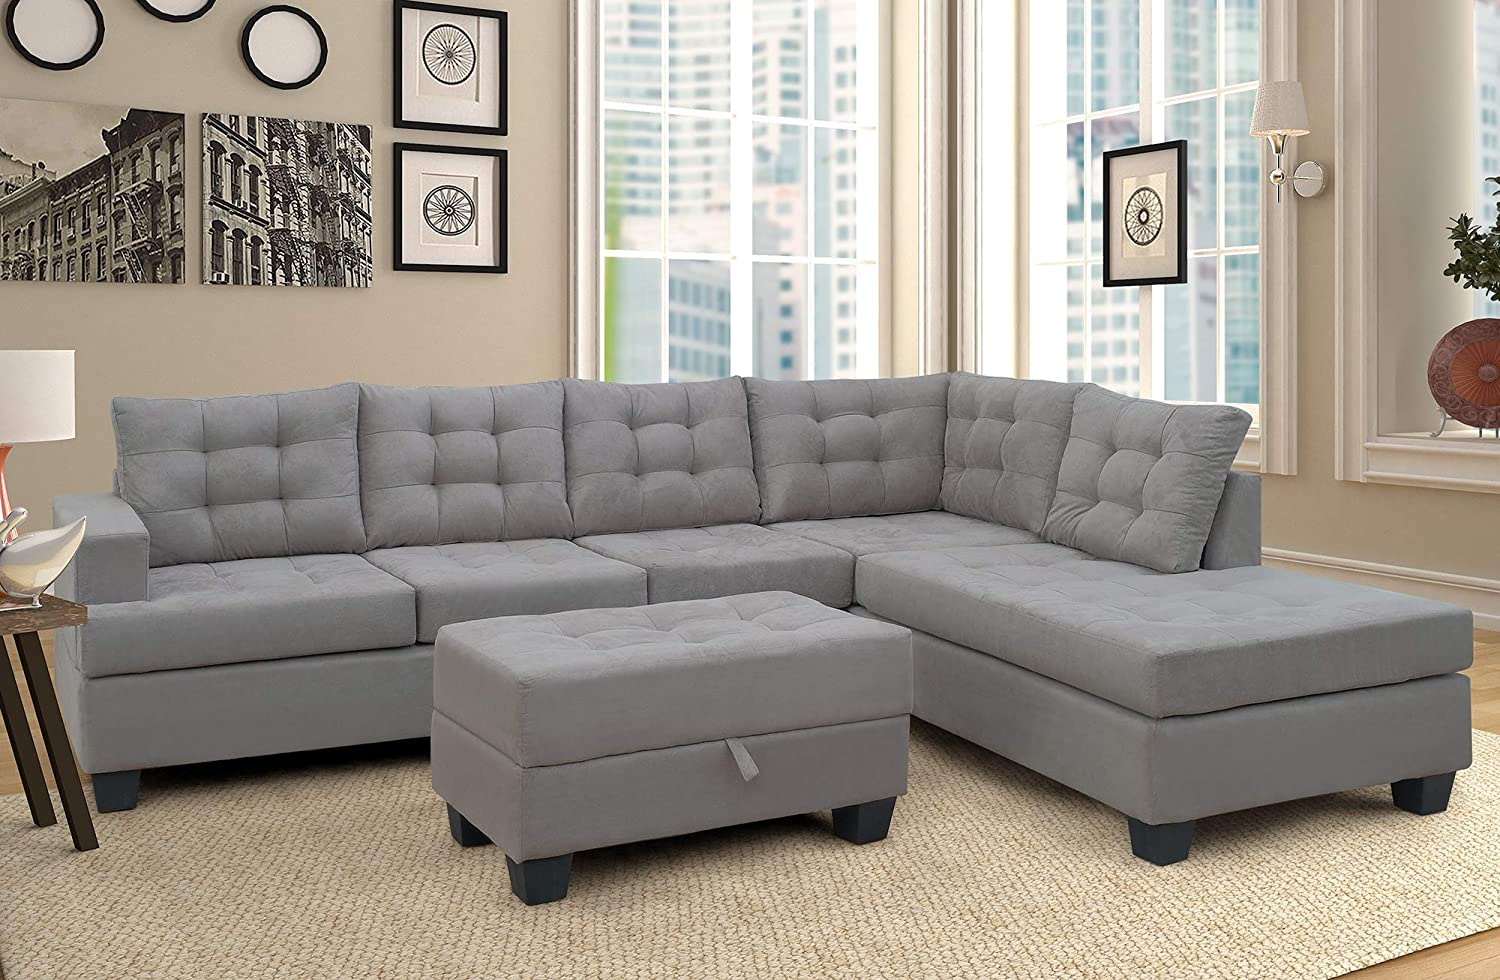 new styles f48c9 82e77 Merax Sectional Sofa with Chaise and Ottoman 3-Piece Sofa for Living Room  Furniture,(Gray)